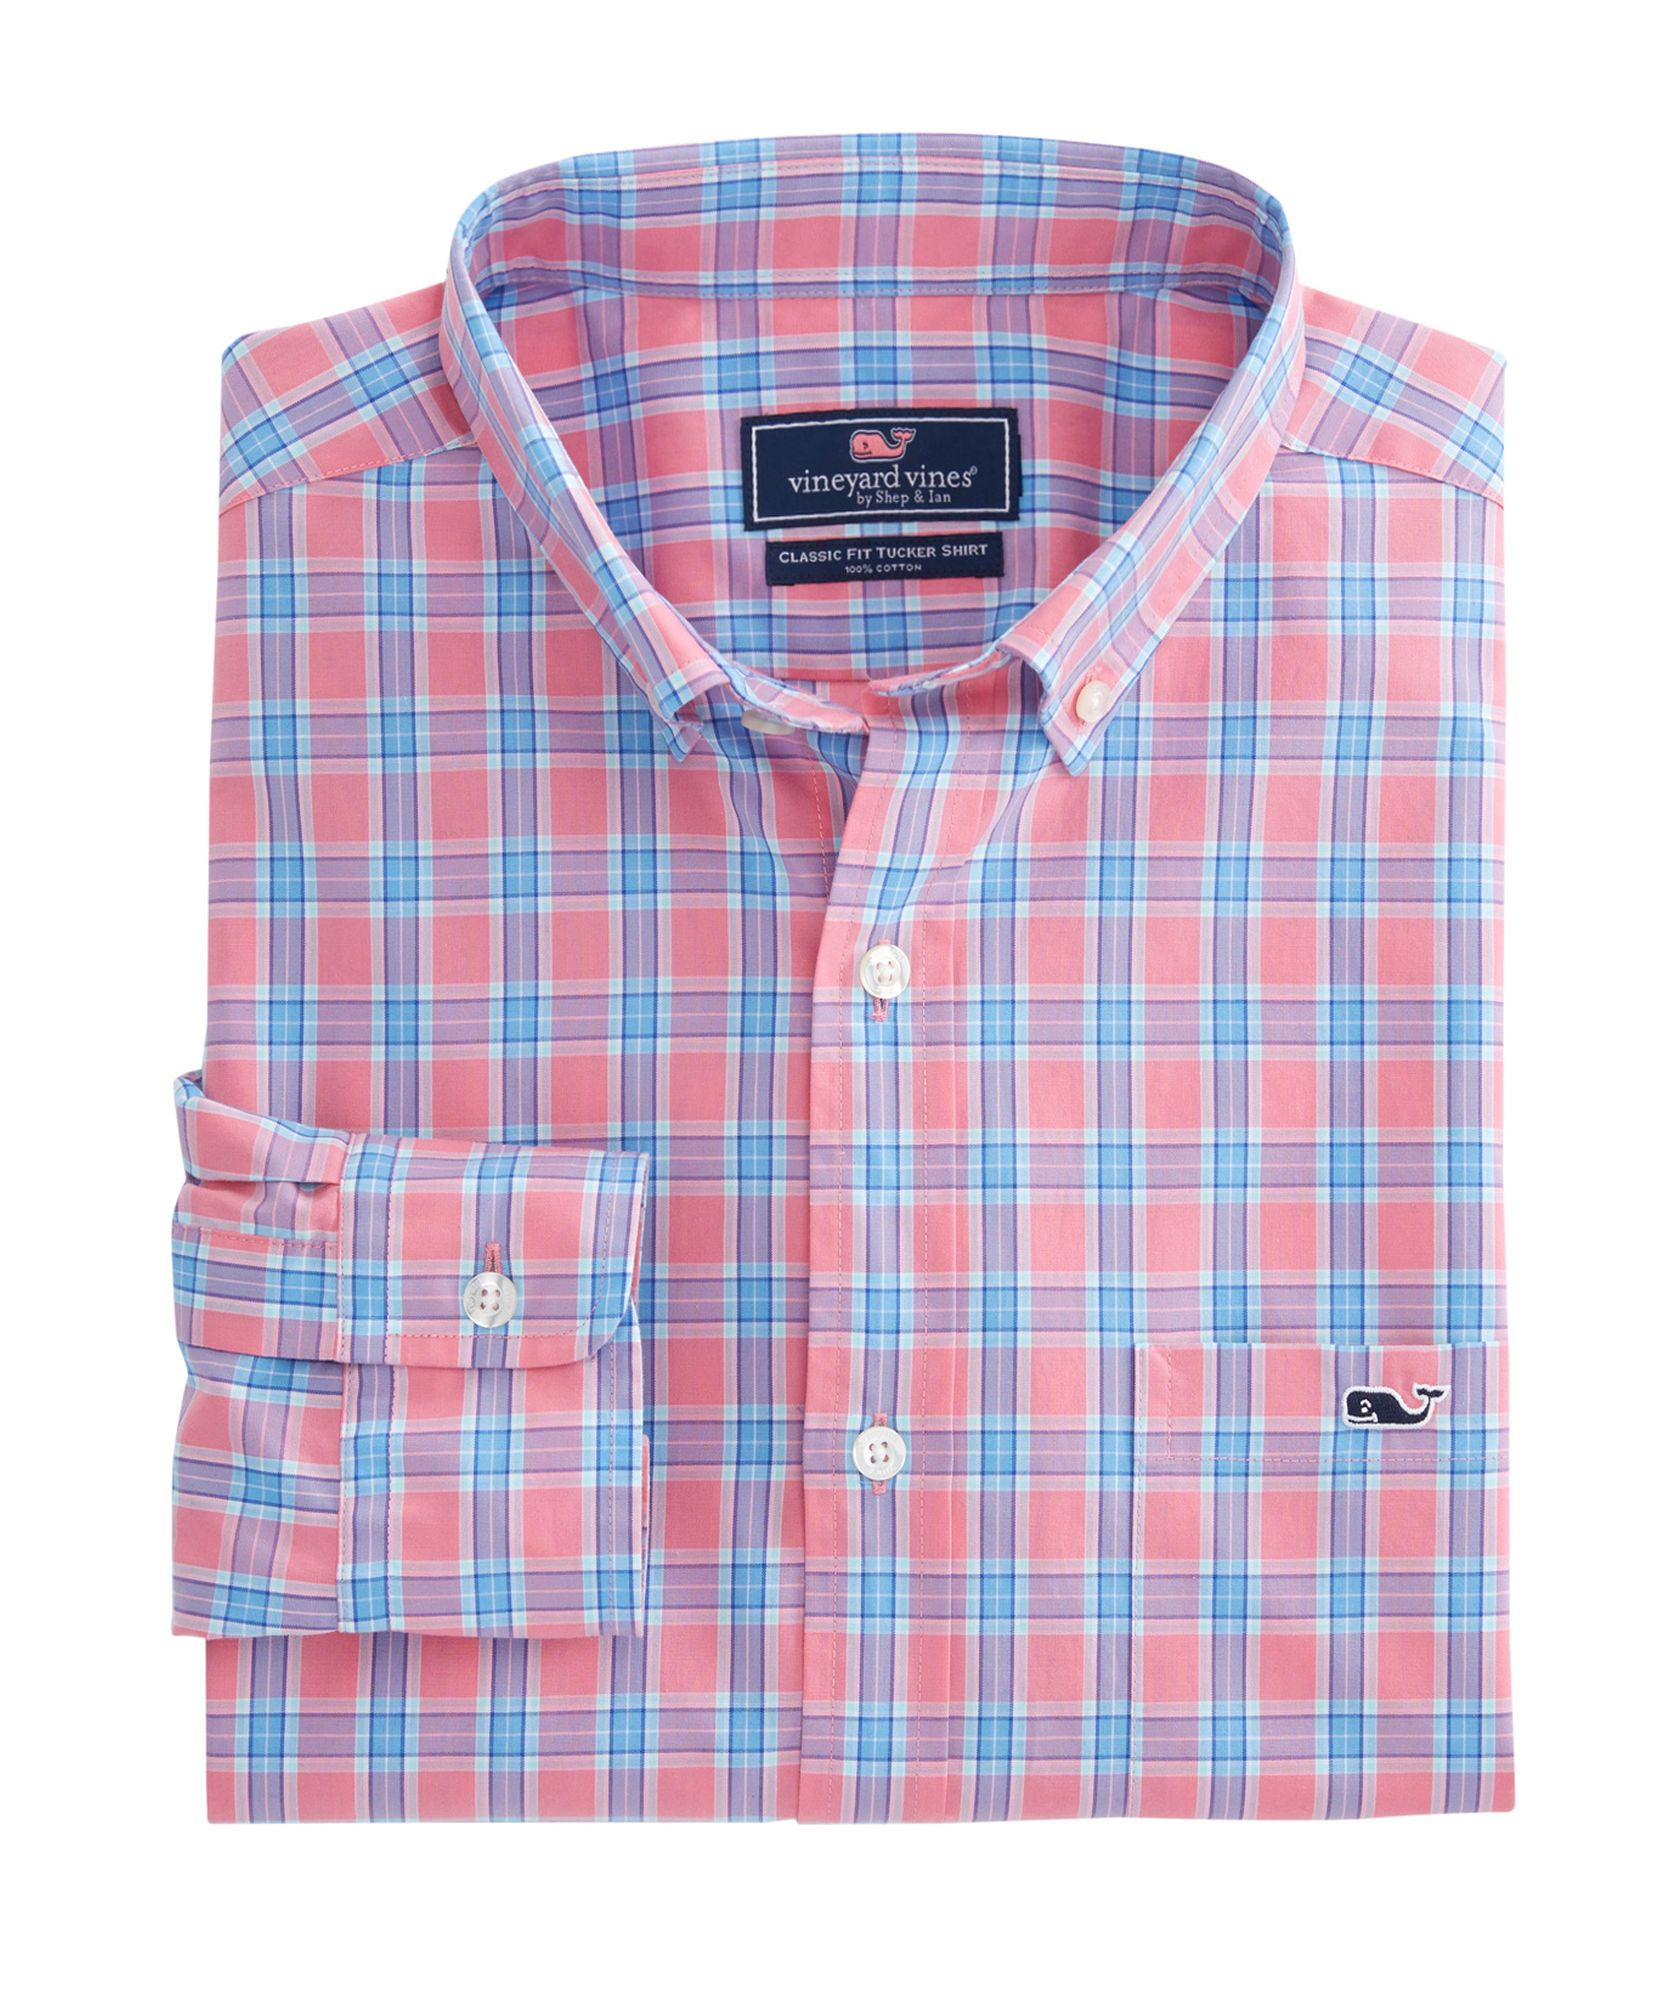 595c6d0b21 14 Best Men's Summer Shirts 2019 - Casual Preppy Summer Shirts for Men